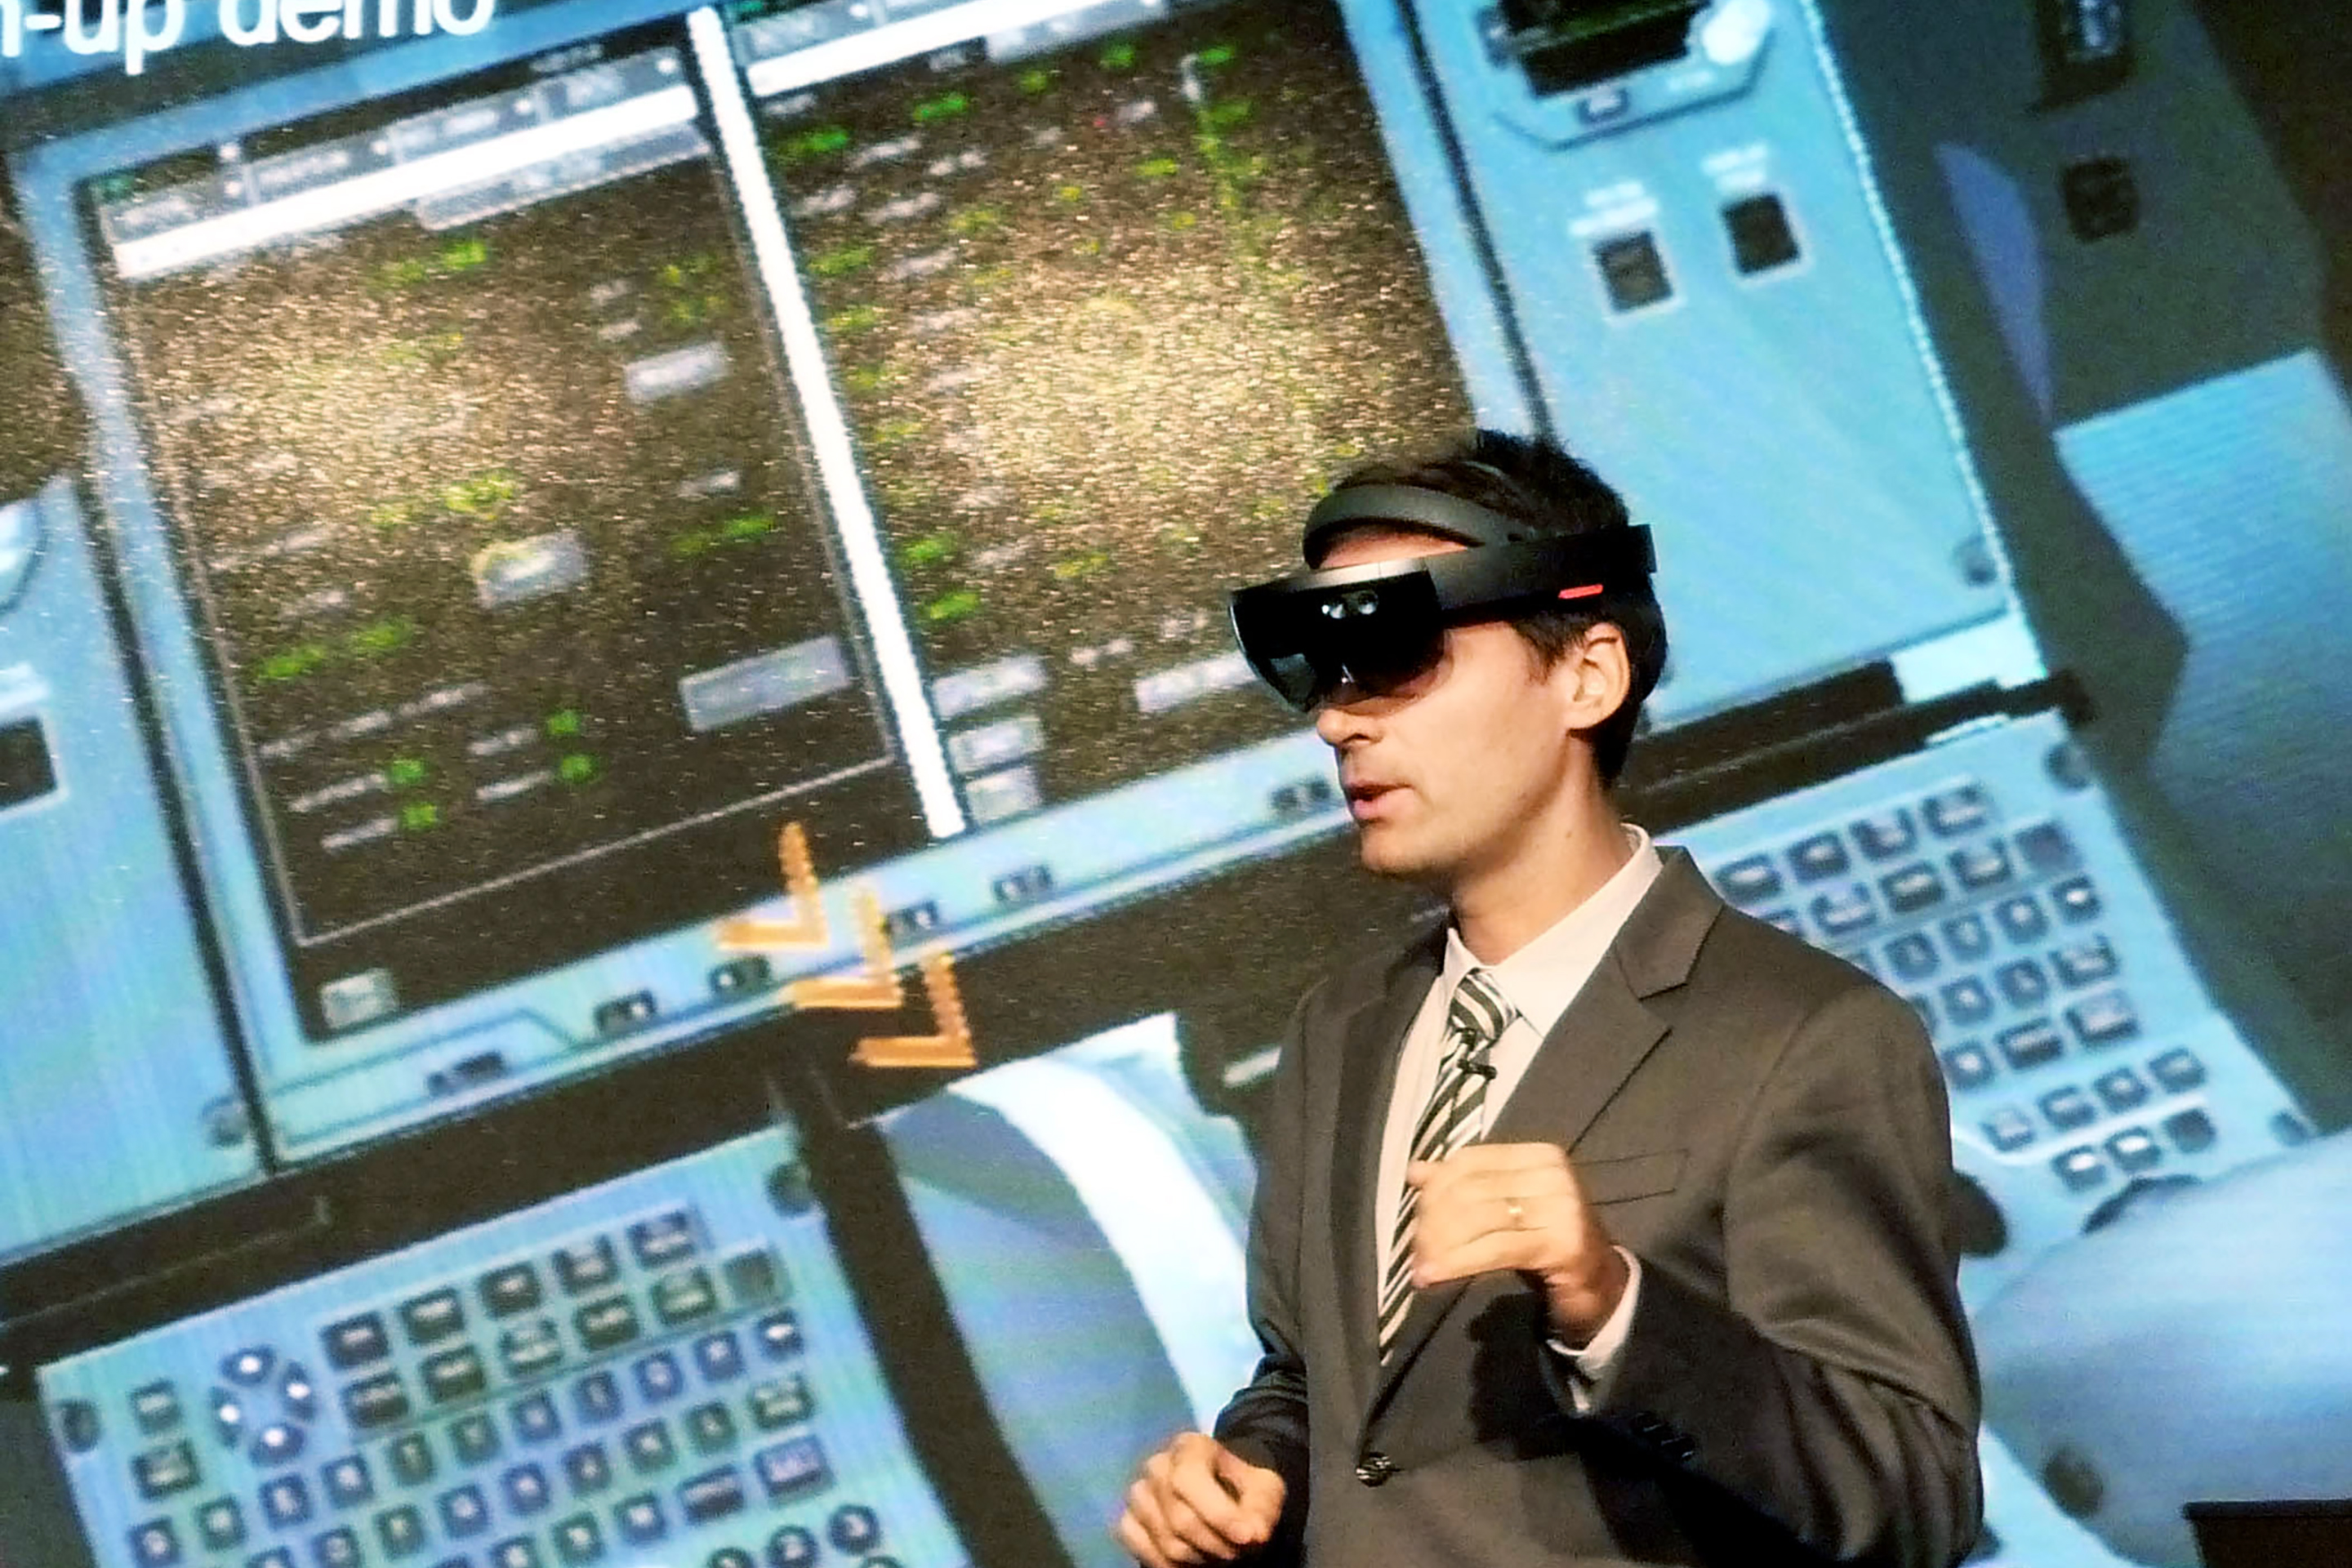 An Airbus staffer views a cockpit with VR.